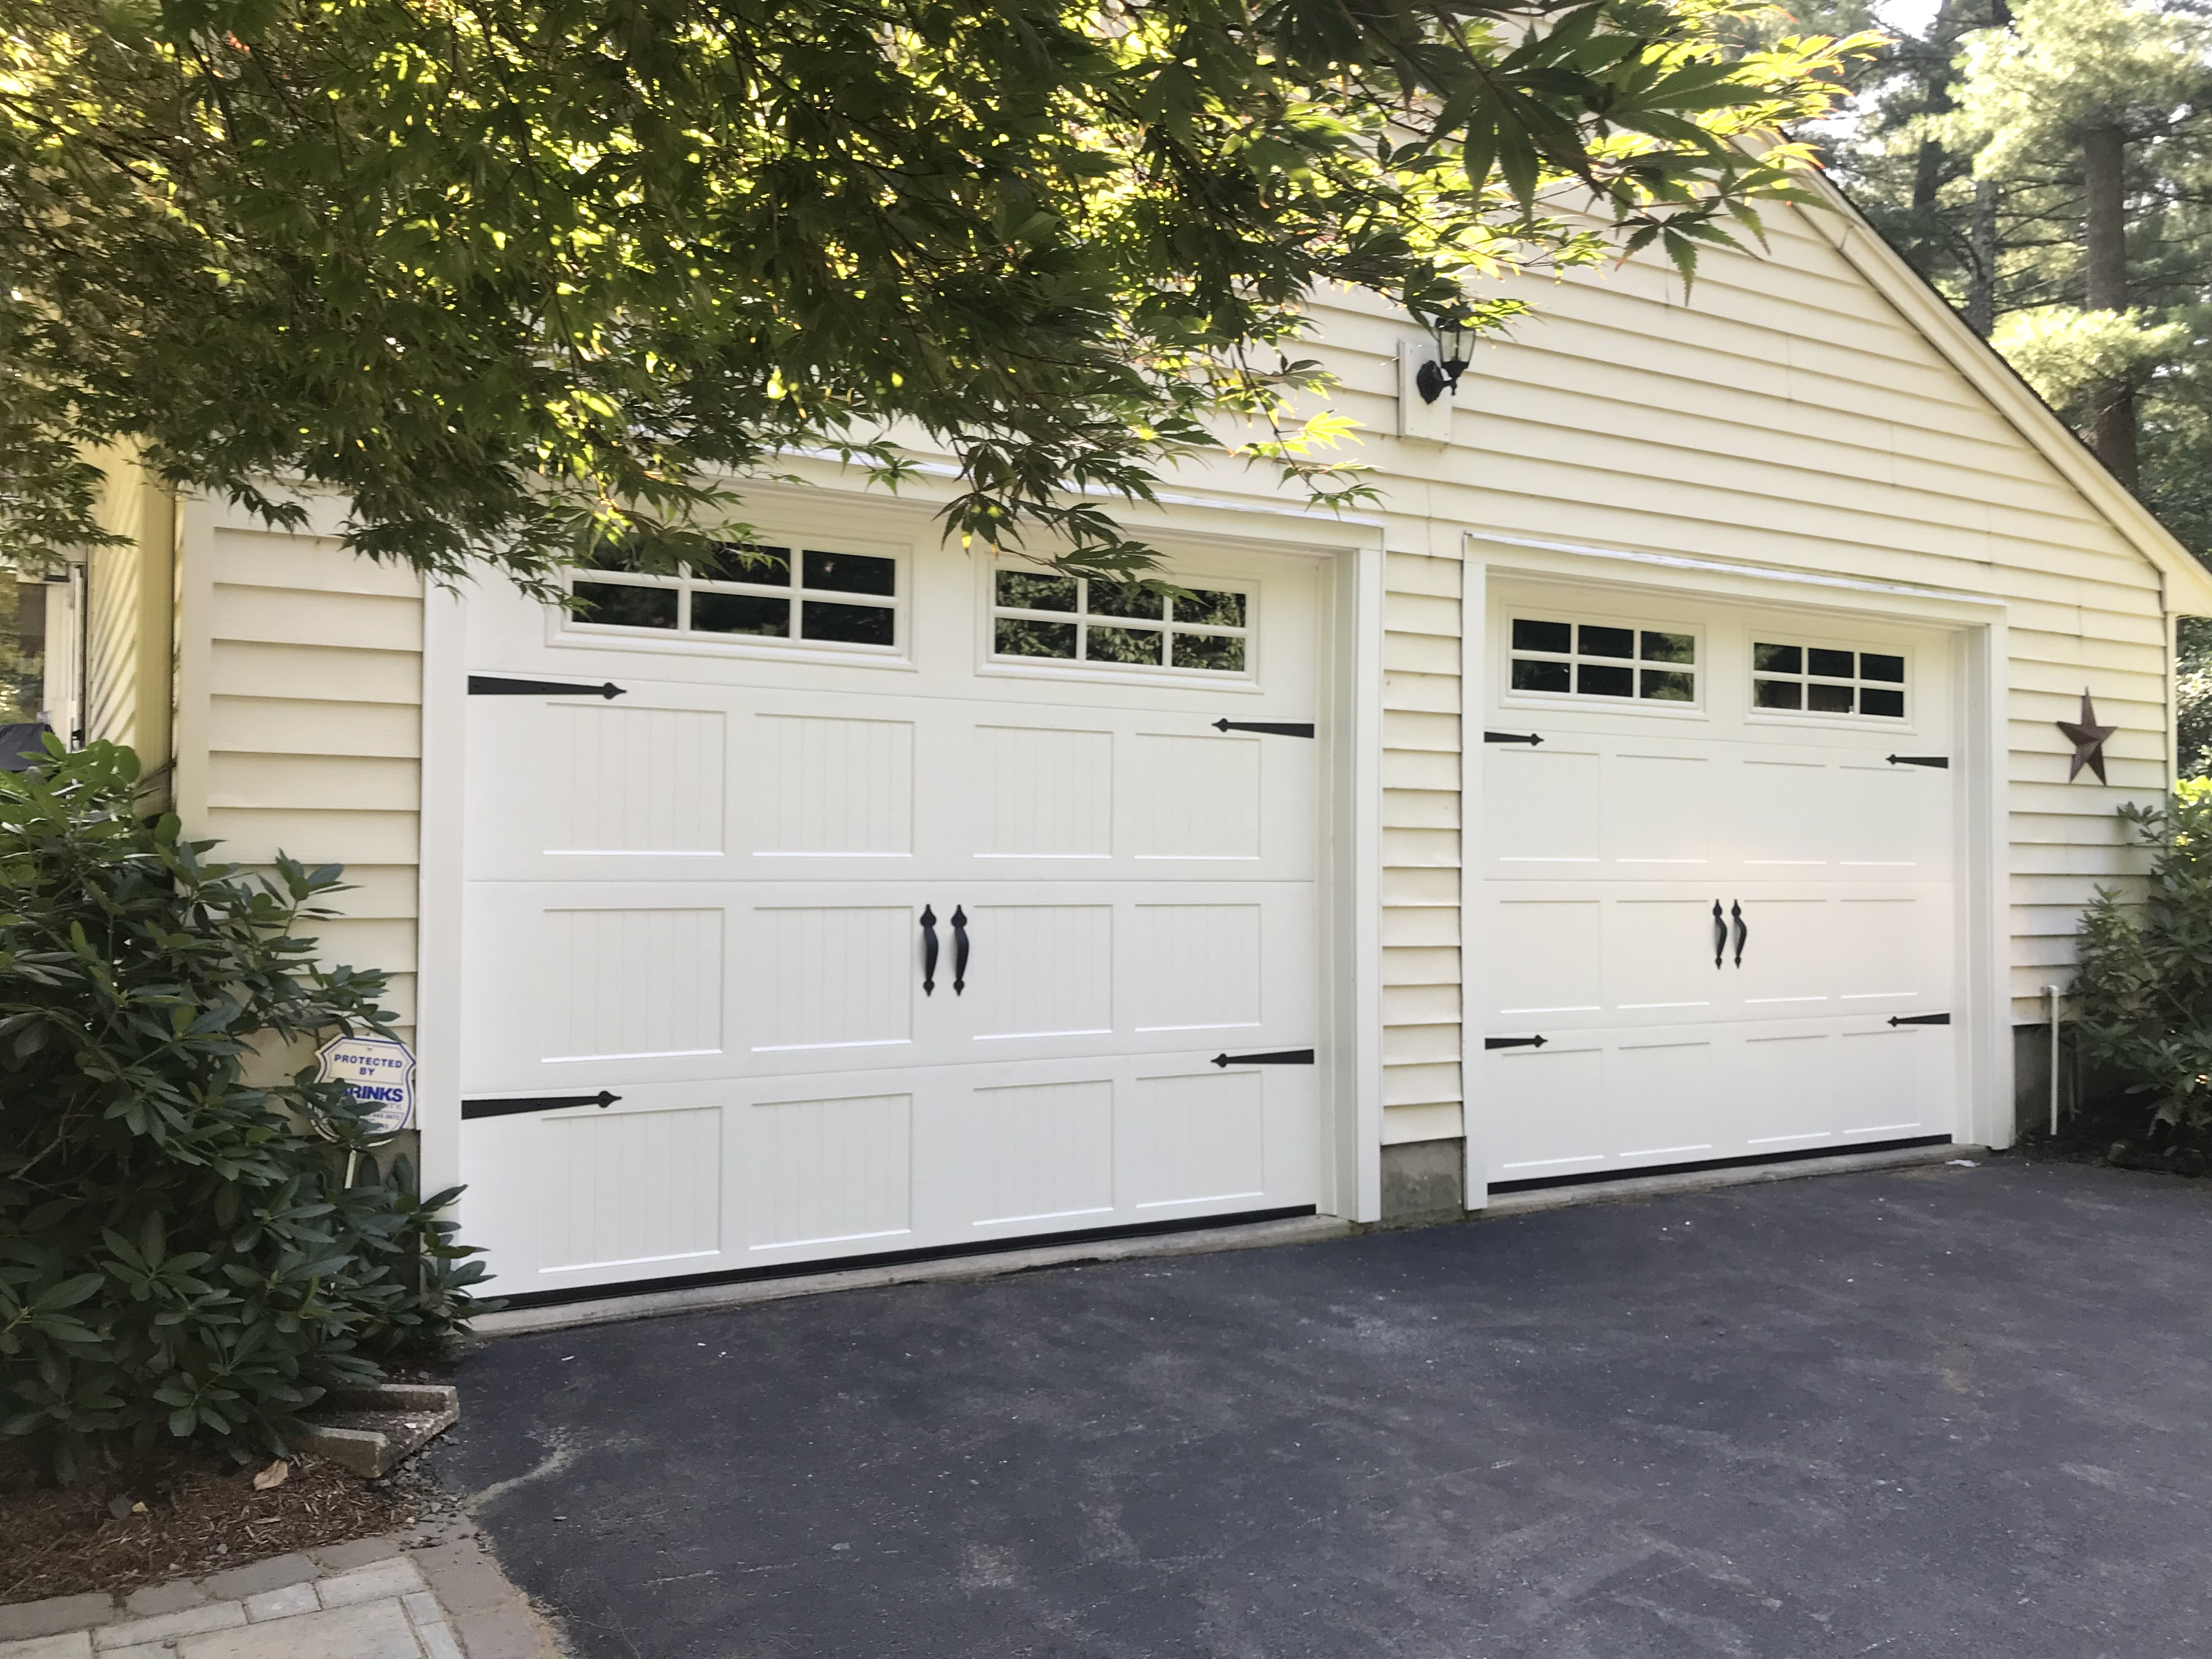 3 car garage with remote controlled doors